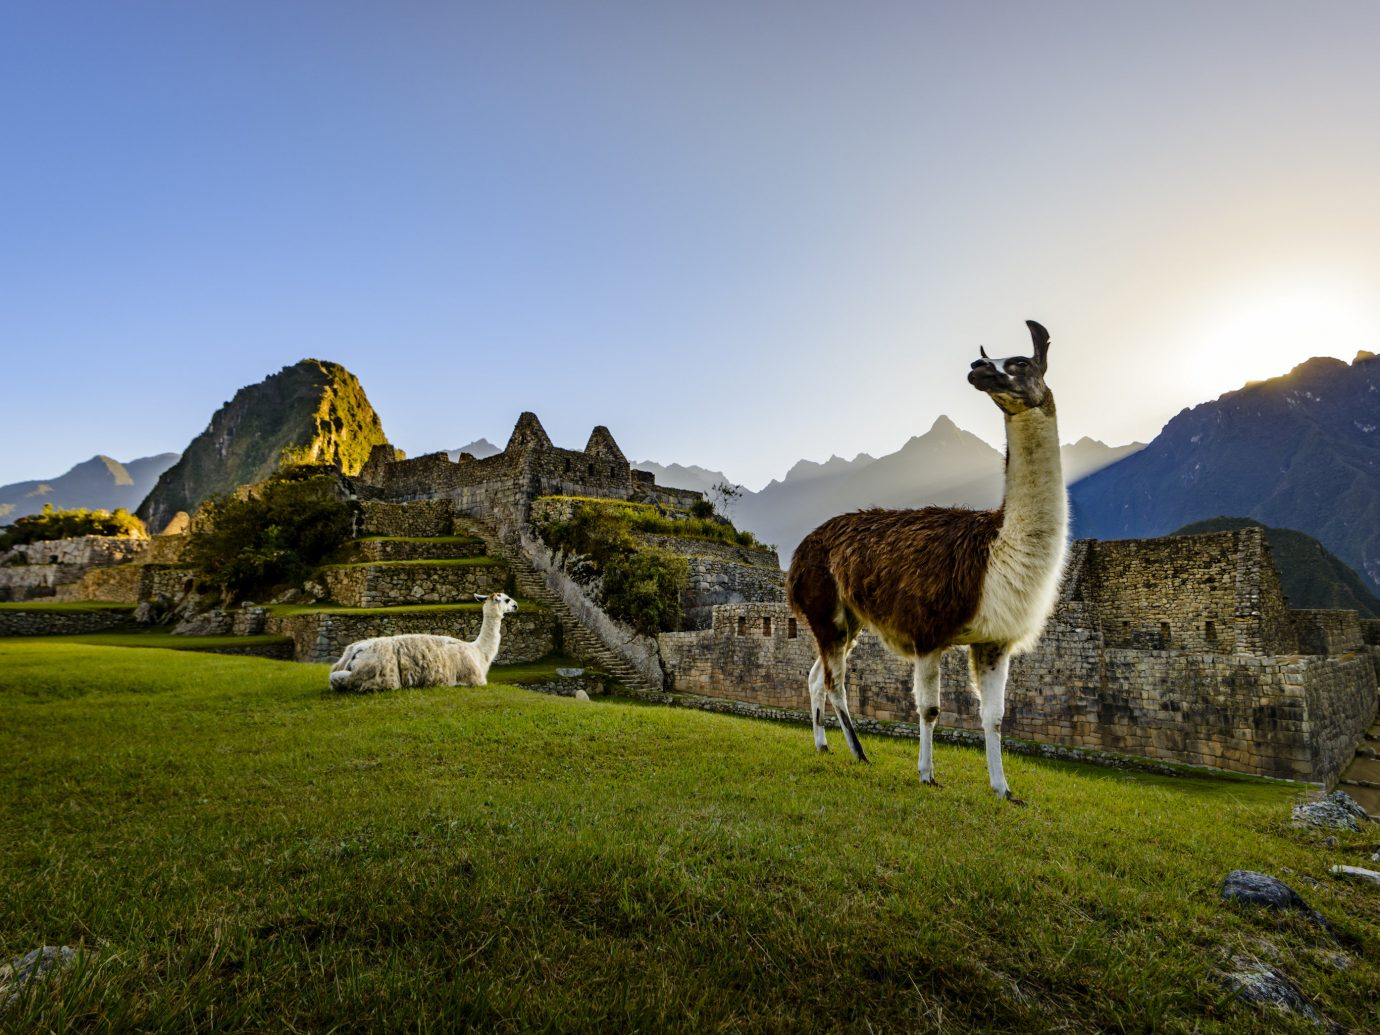 Travel Tips grass sky outdoor field Nature mountainous landforms wilderness mountain Wildlife landscape mammal grassy rural area green mountain range llama pasture lush hillside highland